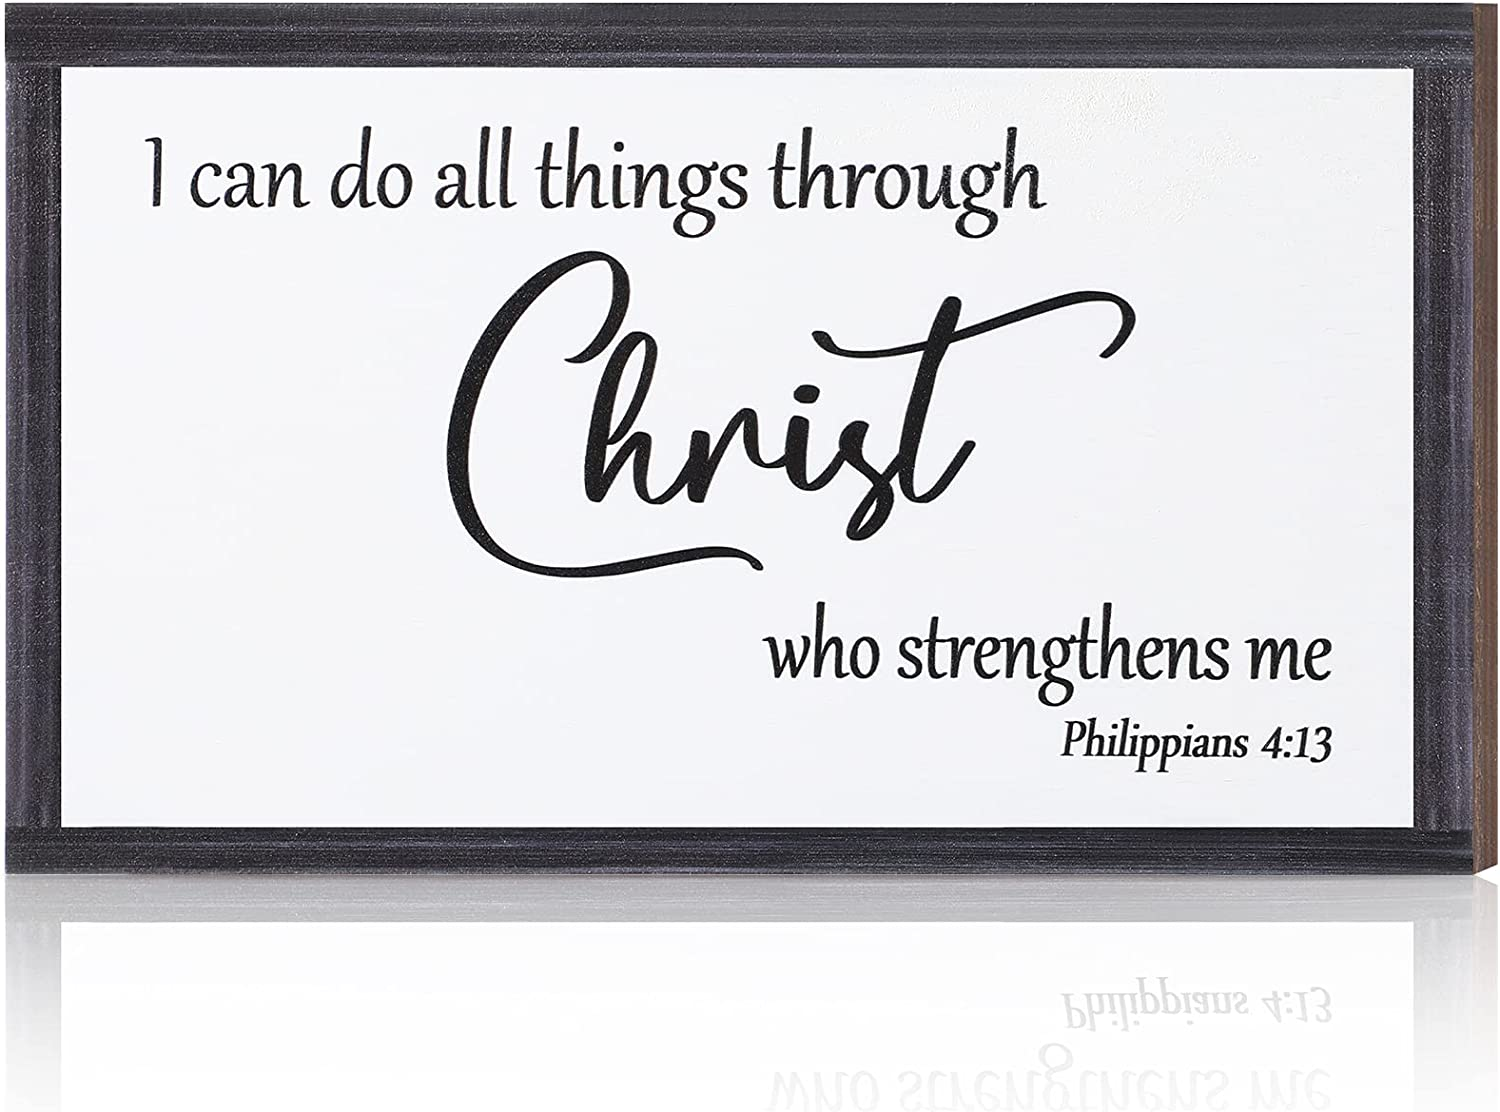 Inspirational Wooden Hanging Wall Plaque Christian Wall Art I can do All Things Through Christ who Strengthens me Religious Wood Bible Verse Sign Decor for Living-room Bedroom, 10 x 6 x 0.2 Inch